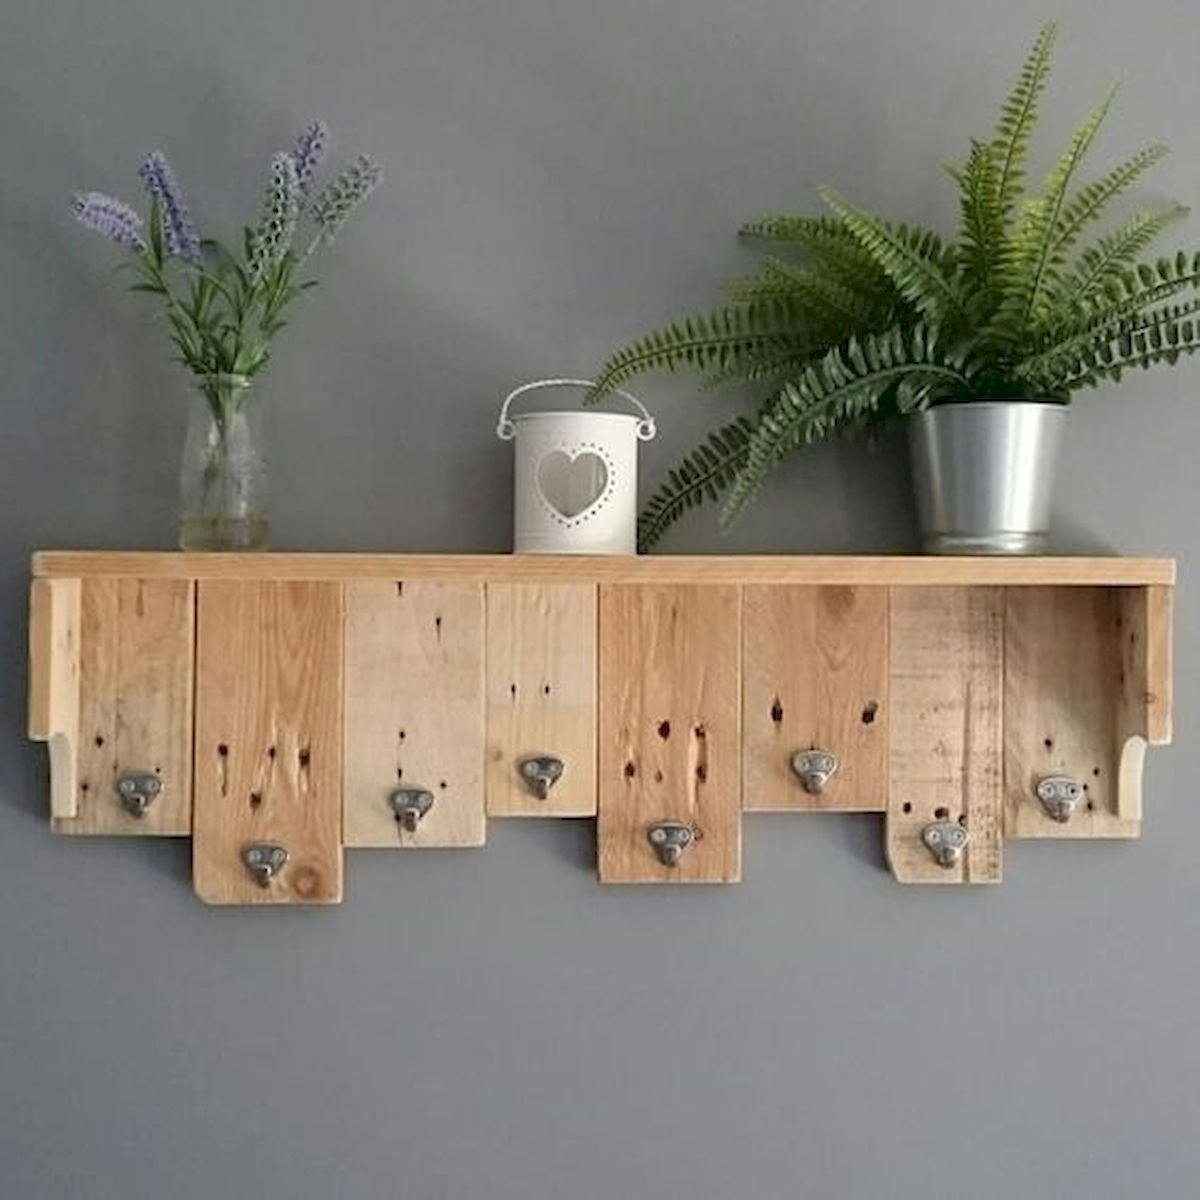 45 Awesome Furniture Ideas for Small House With Wood Project Ideas (20)